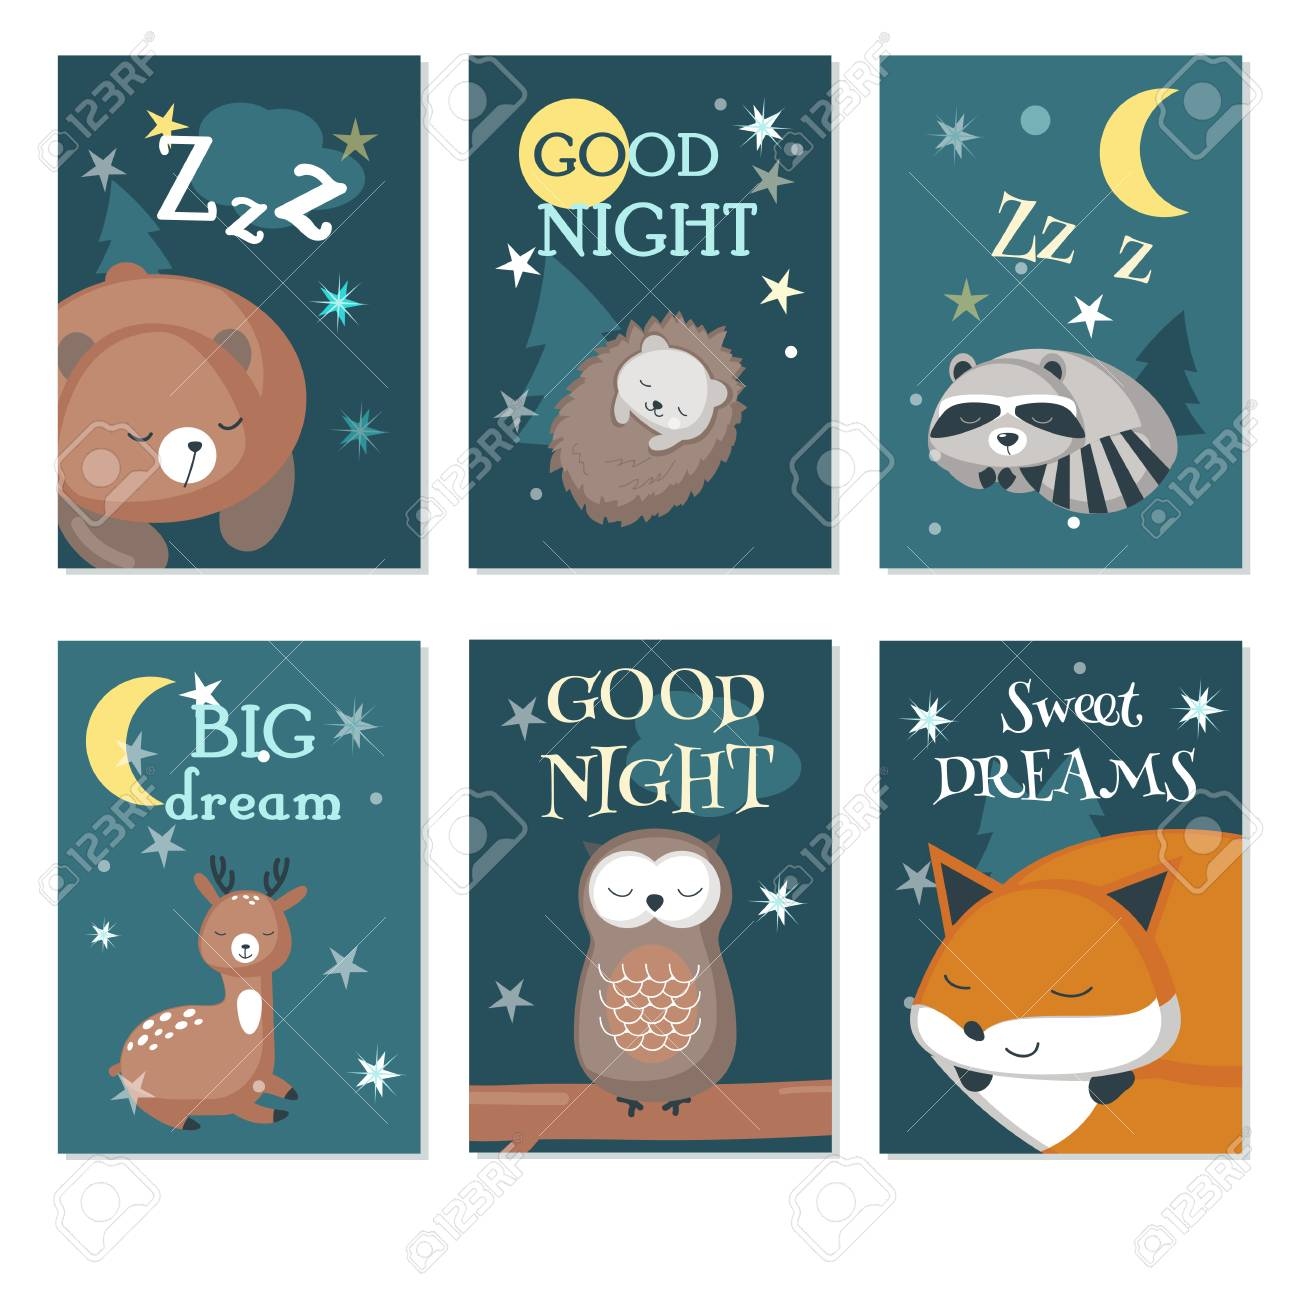 Vector Set Of Cards With Sleeping Cute Animals And Handwritten